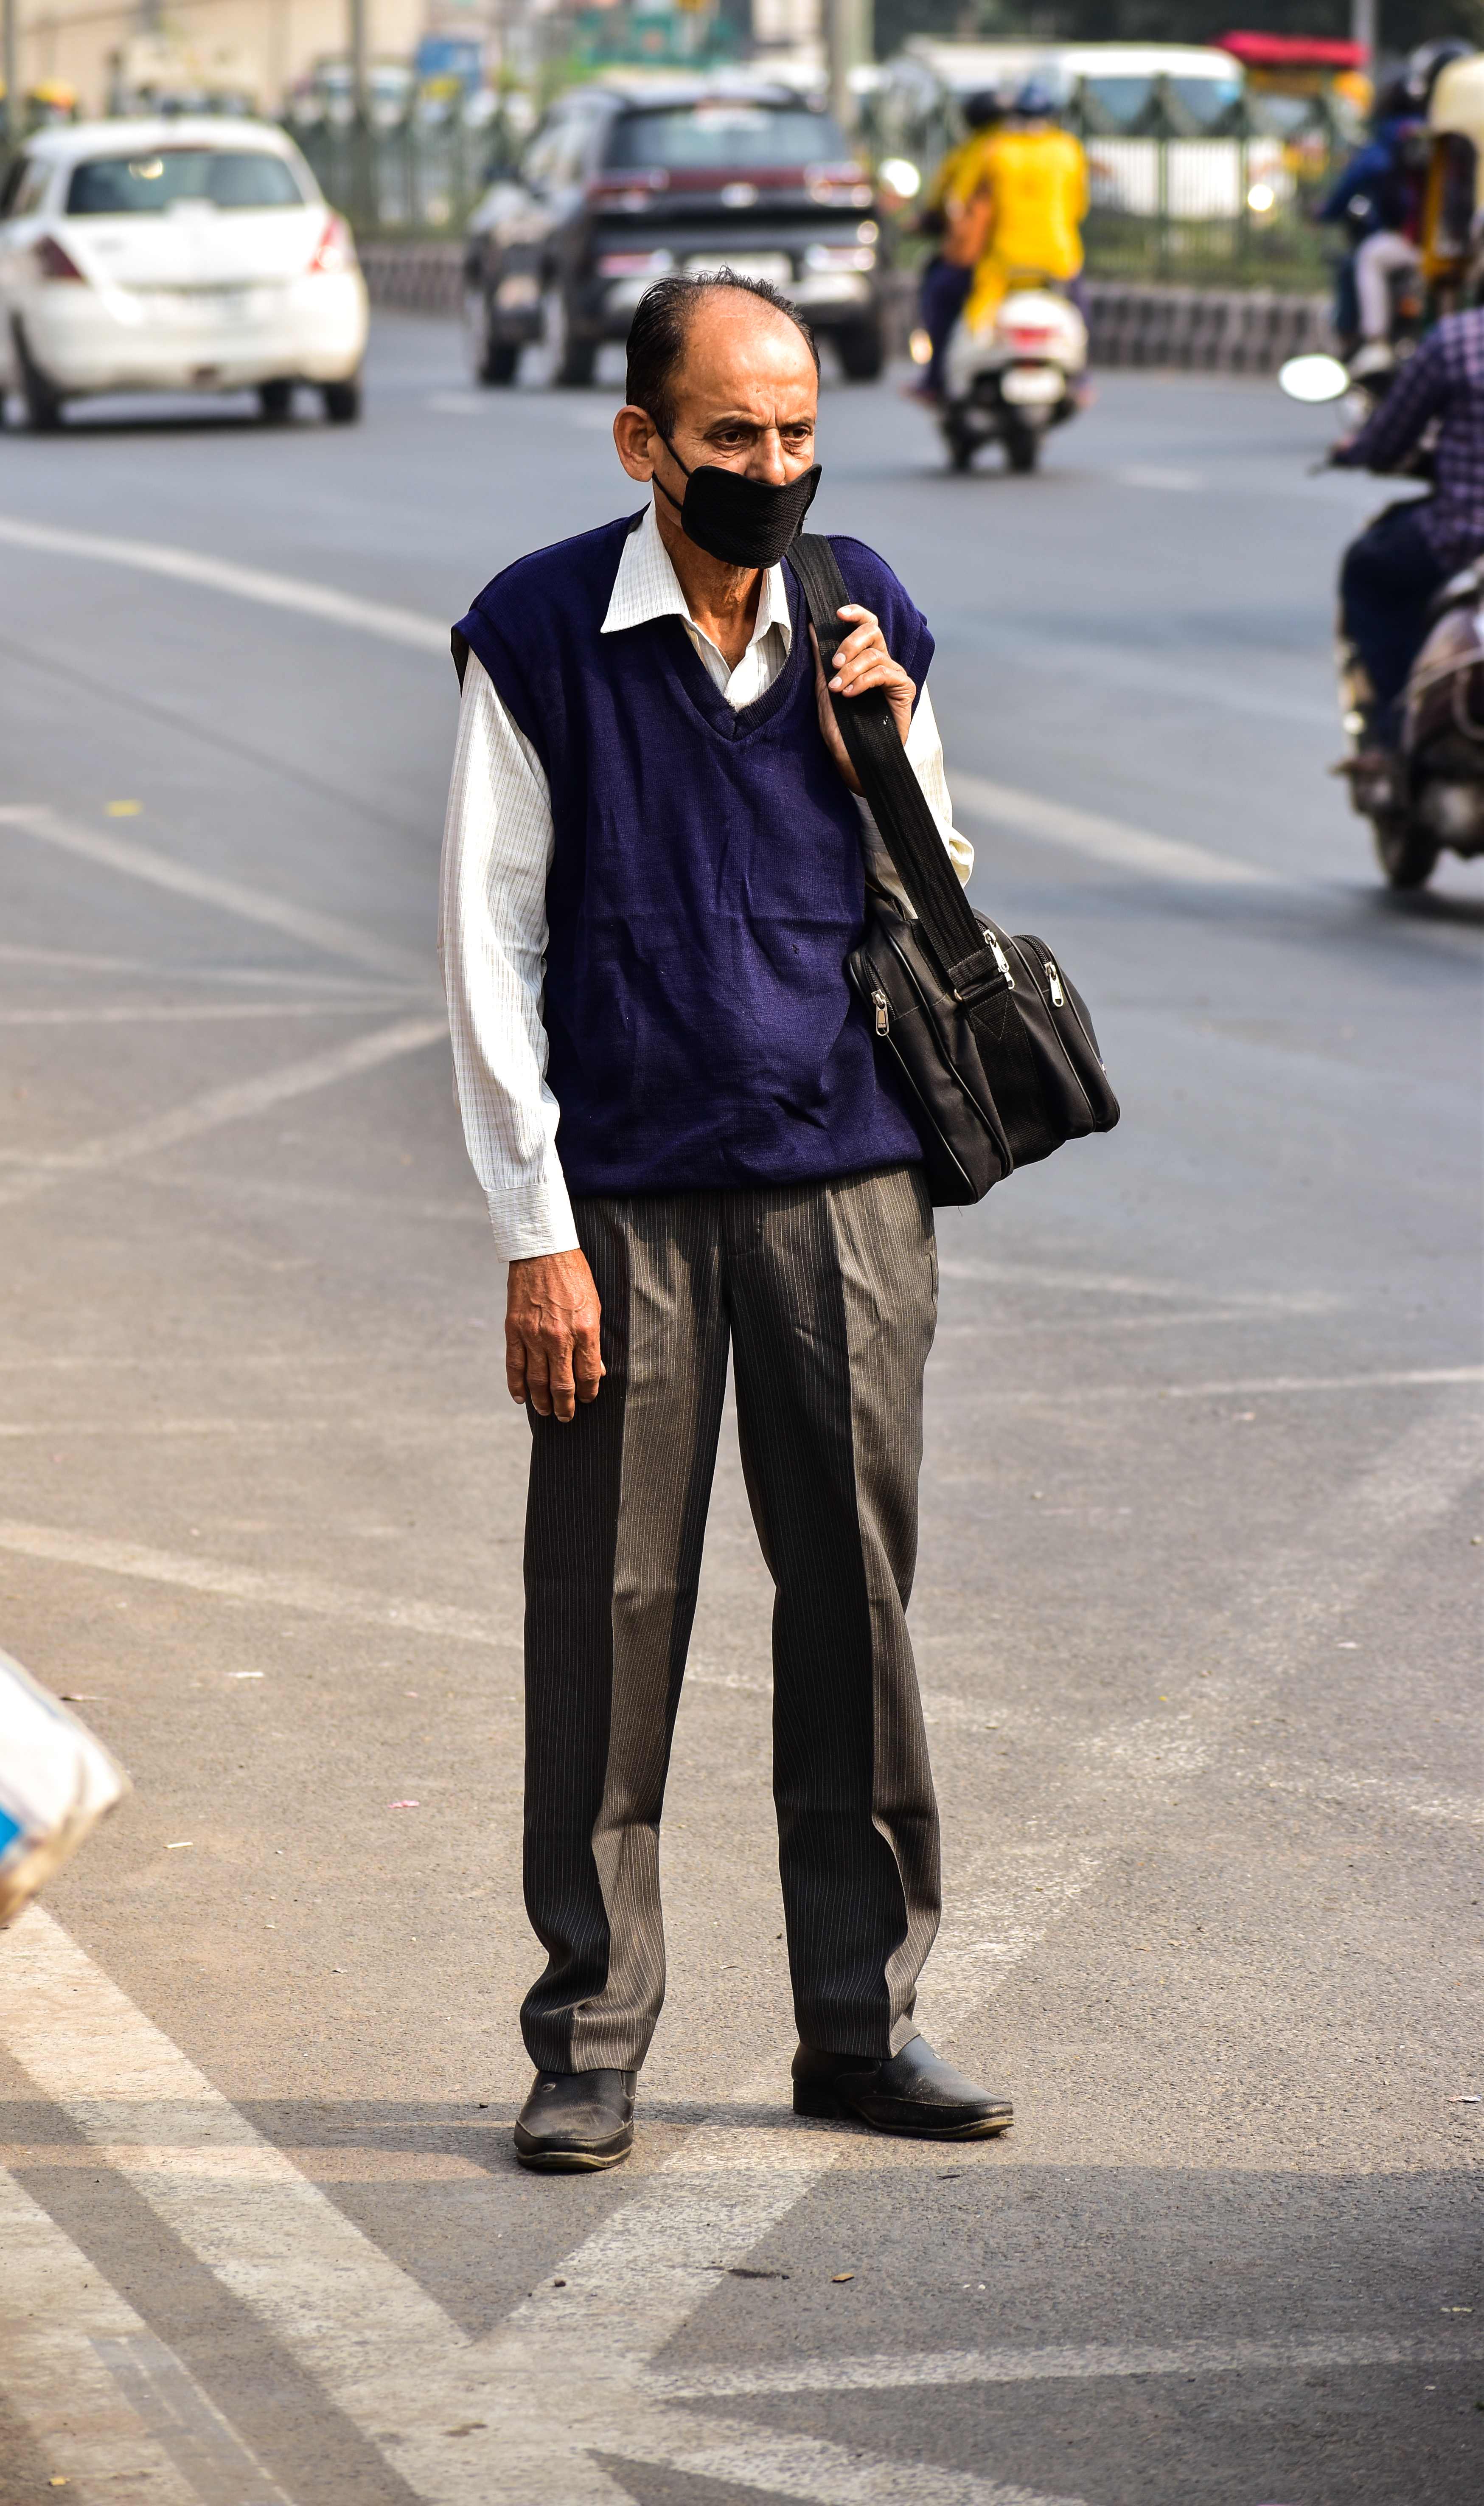 Old man on road